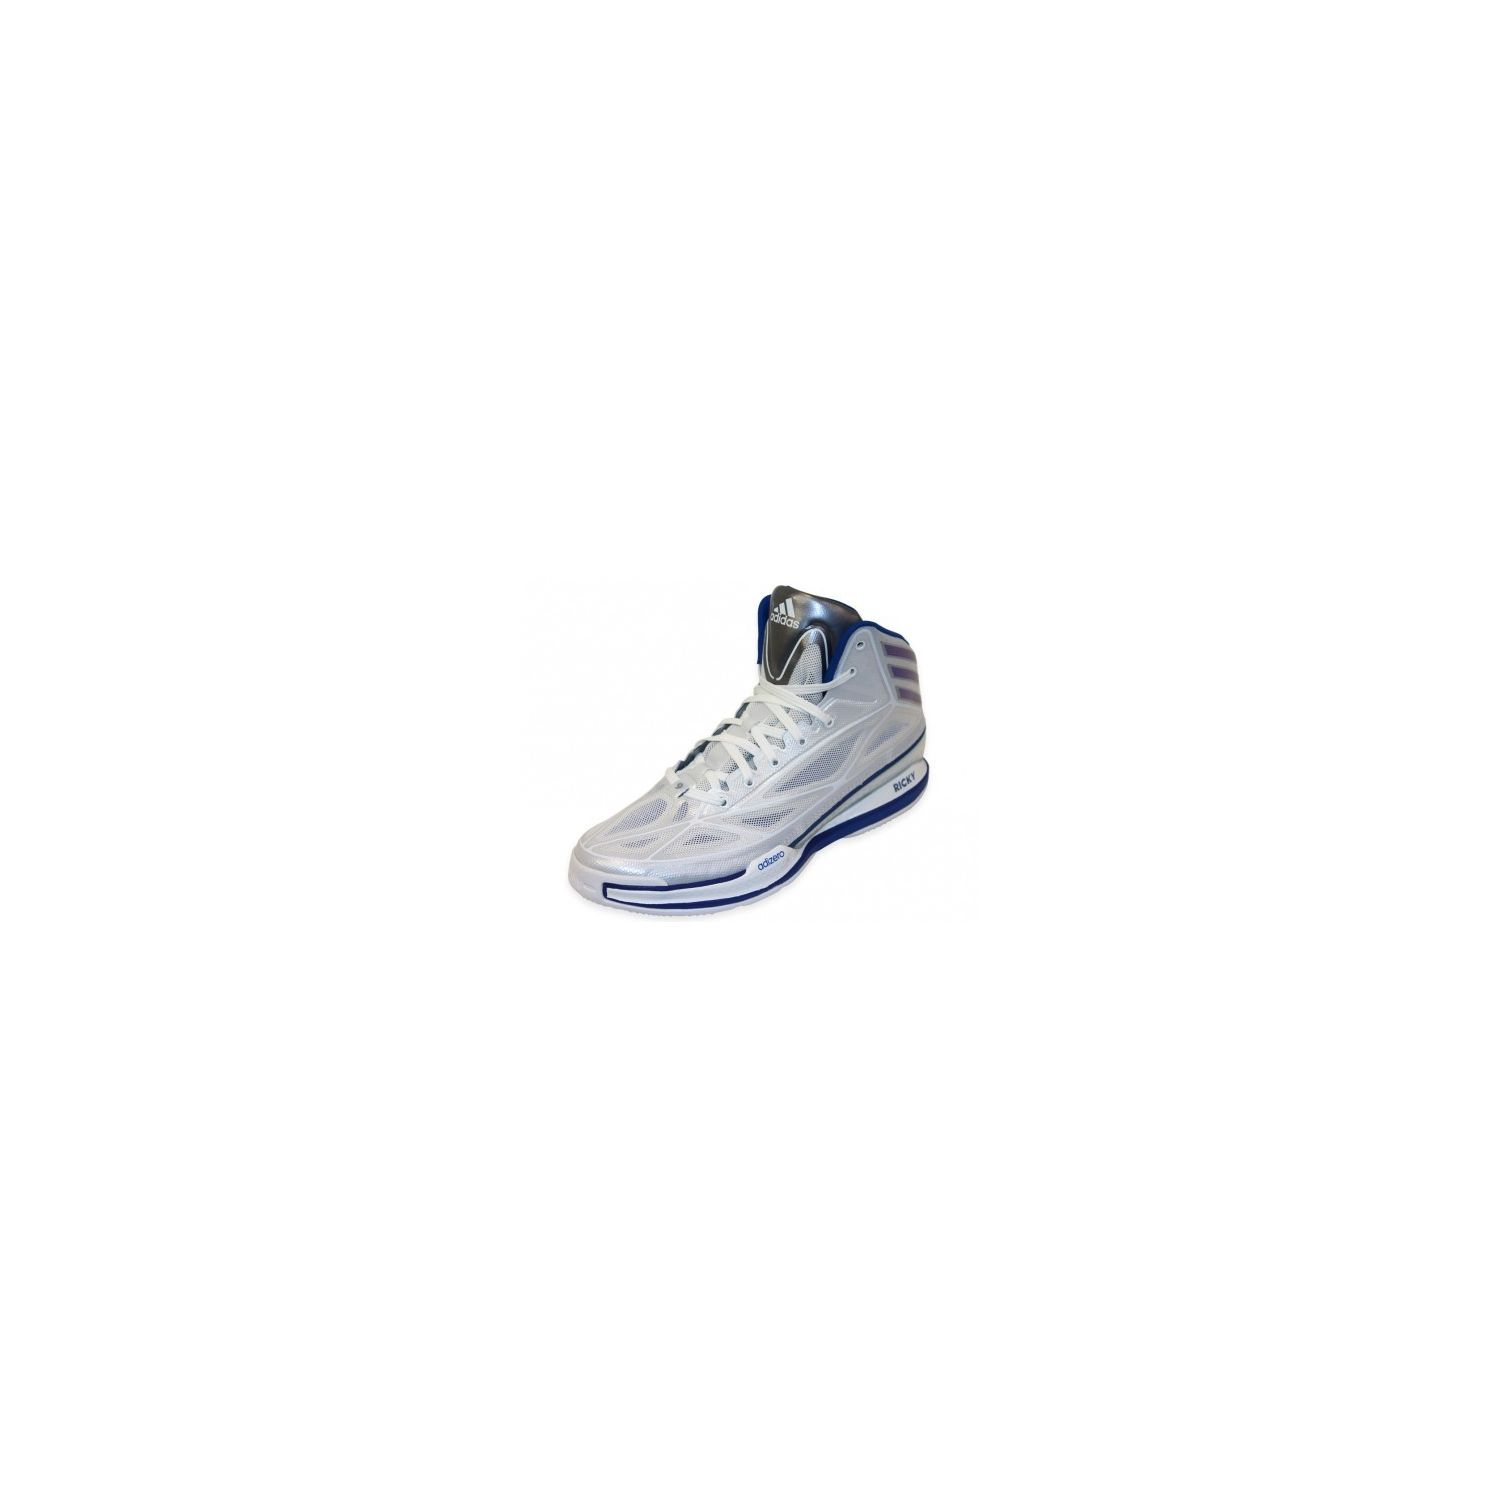 Originals 3 Adizero Rubio Ricky Crazy Light Adidas zw4xH1qRS1